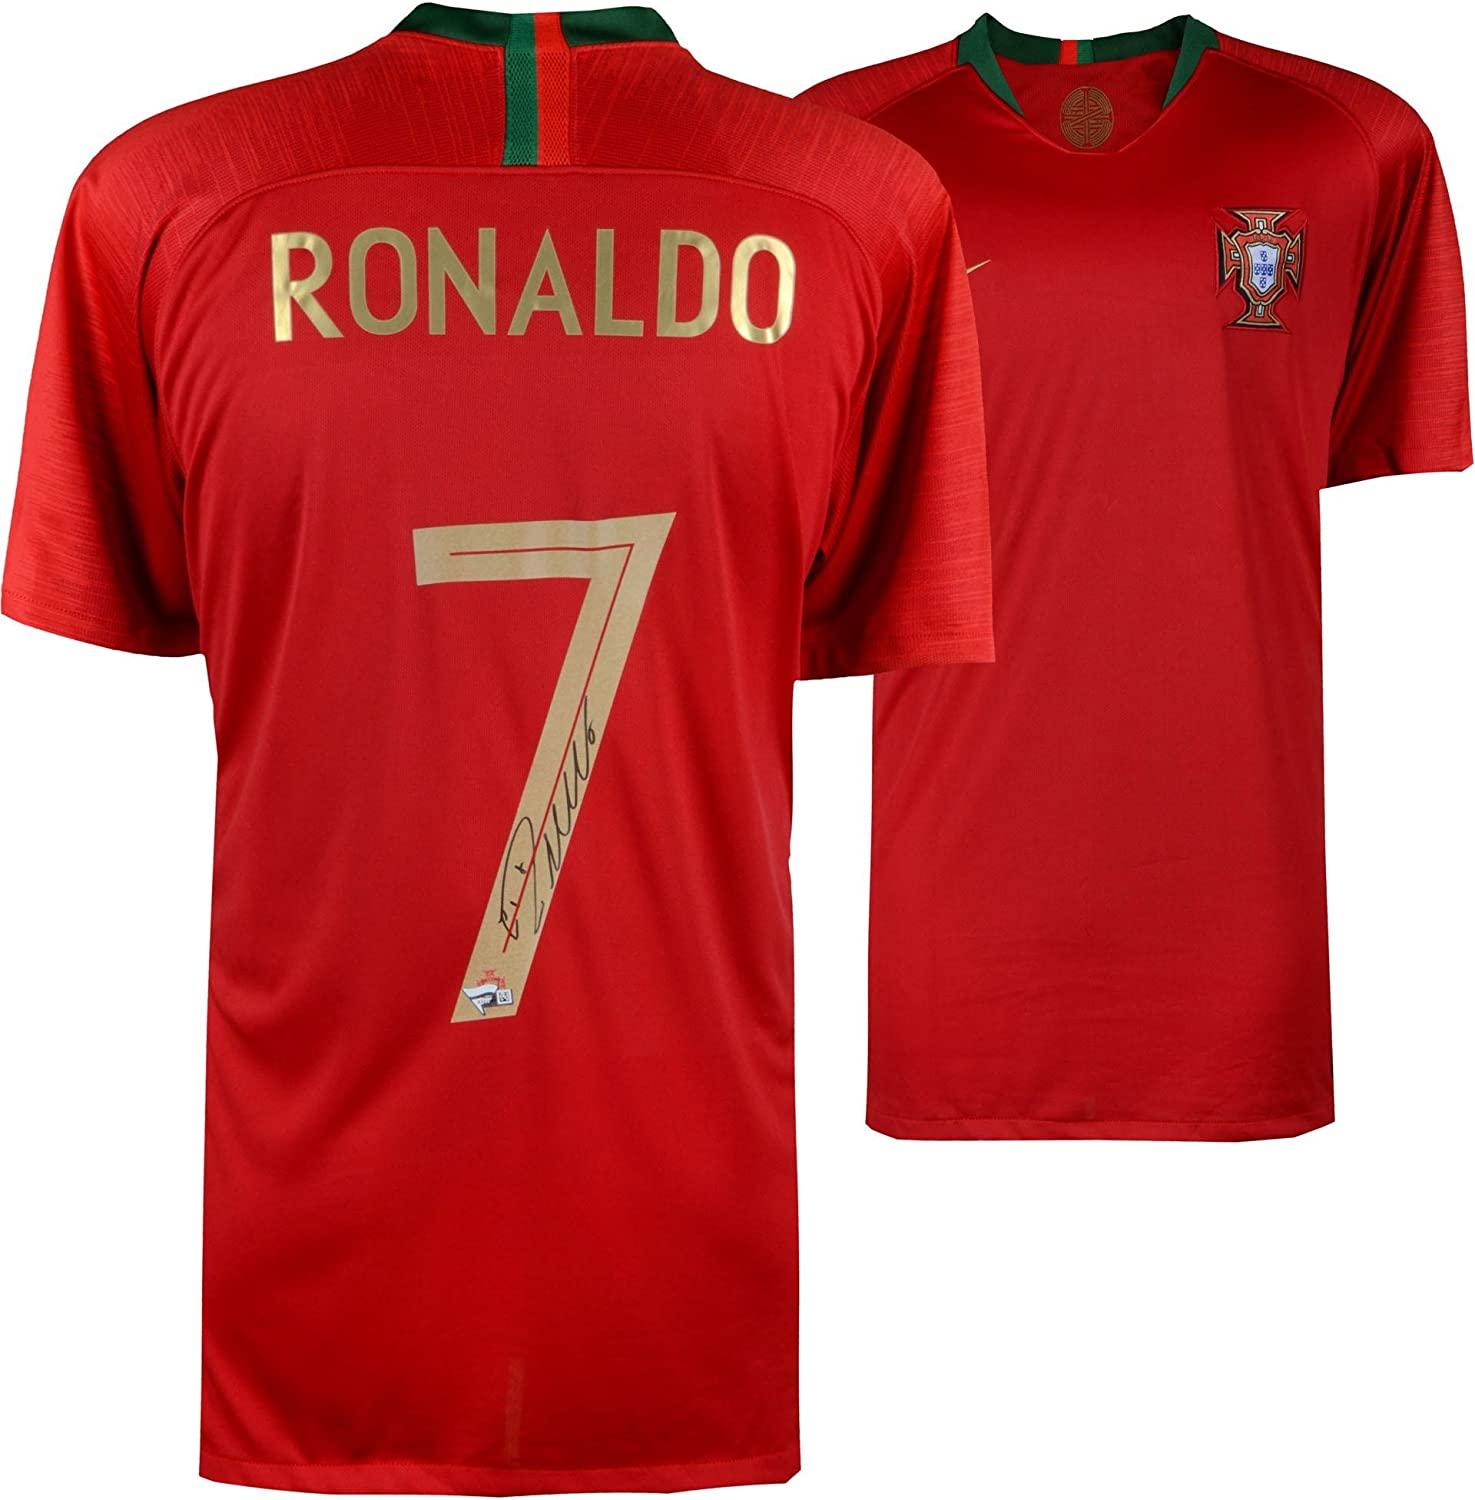 newest ae8ee 8c986 Cristiano Ronaldo Portugal Autographed 2018 Jersey ...